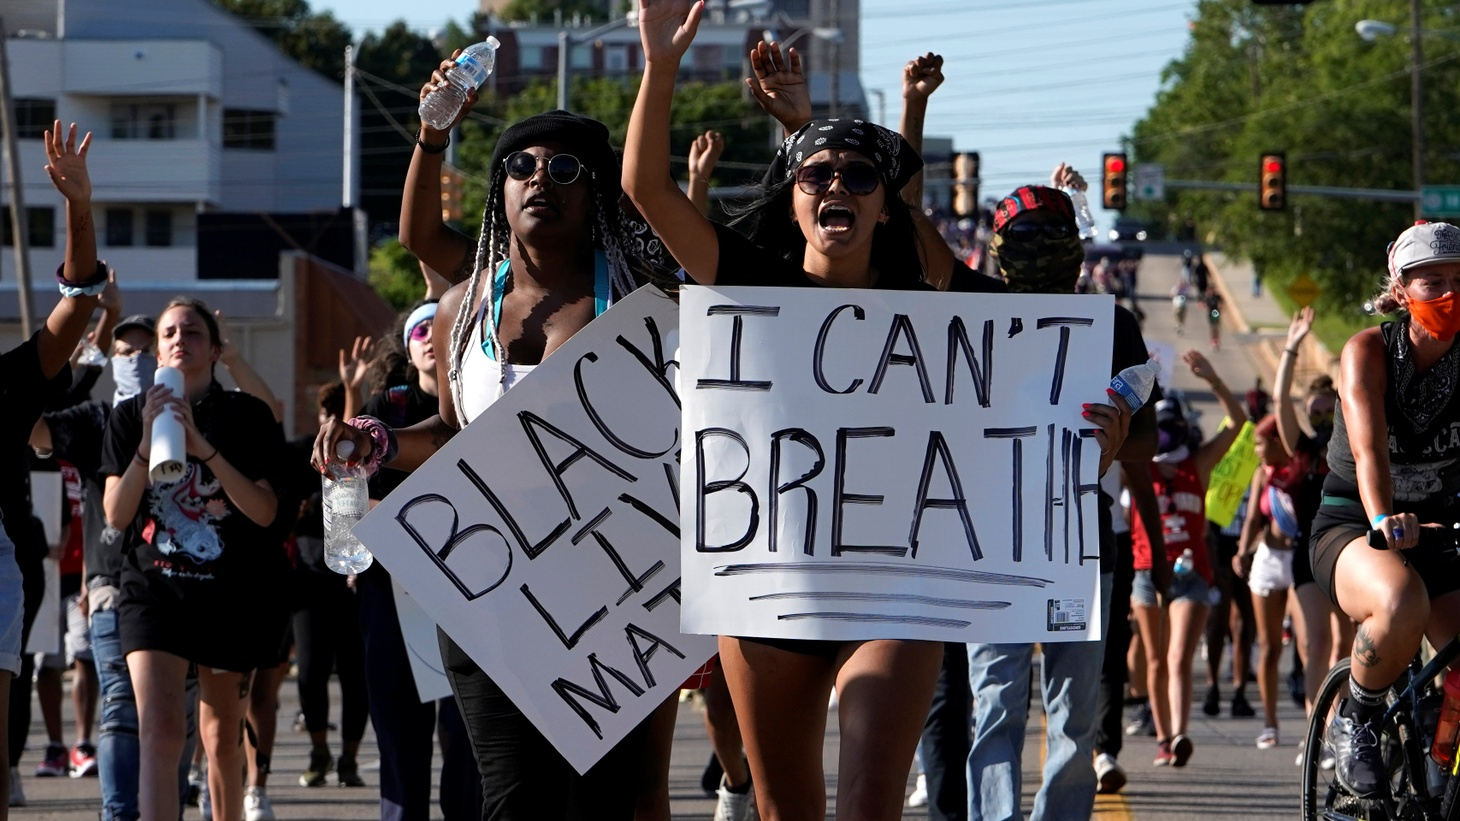 People attend a protest during nationwide unrest following the death in Minneapolis police custody of George Floyd in Oklahoma City, Oklahoma, U.S., May 31, 2020.